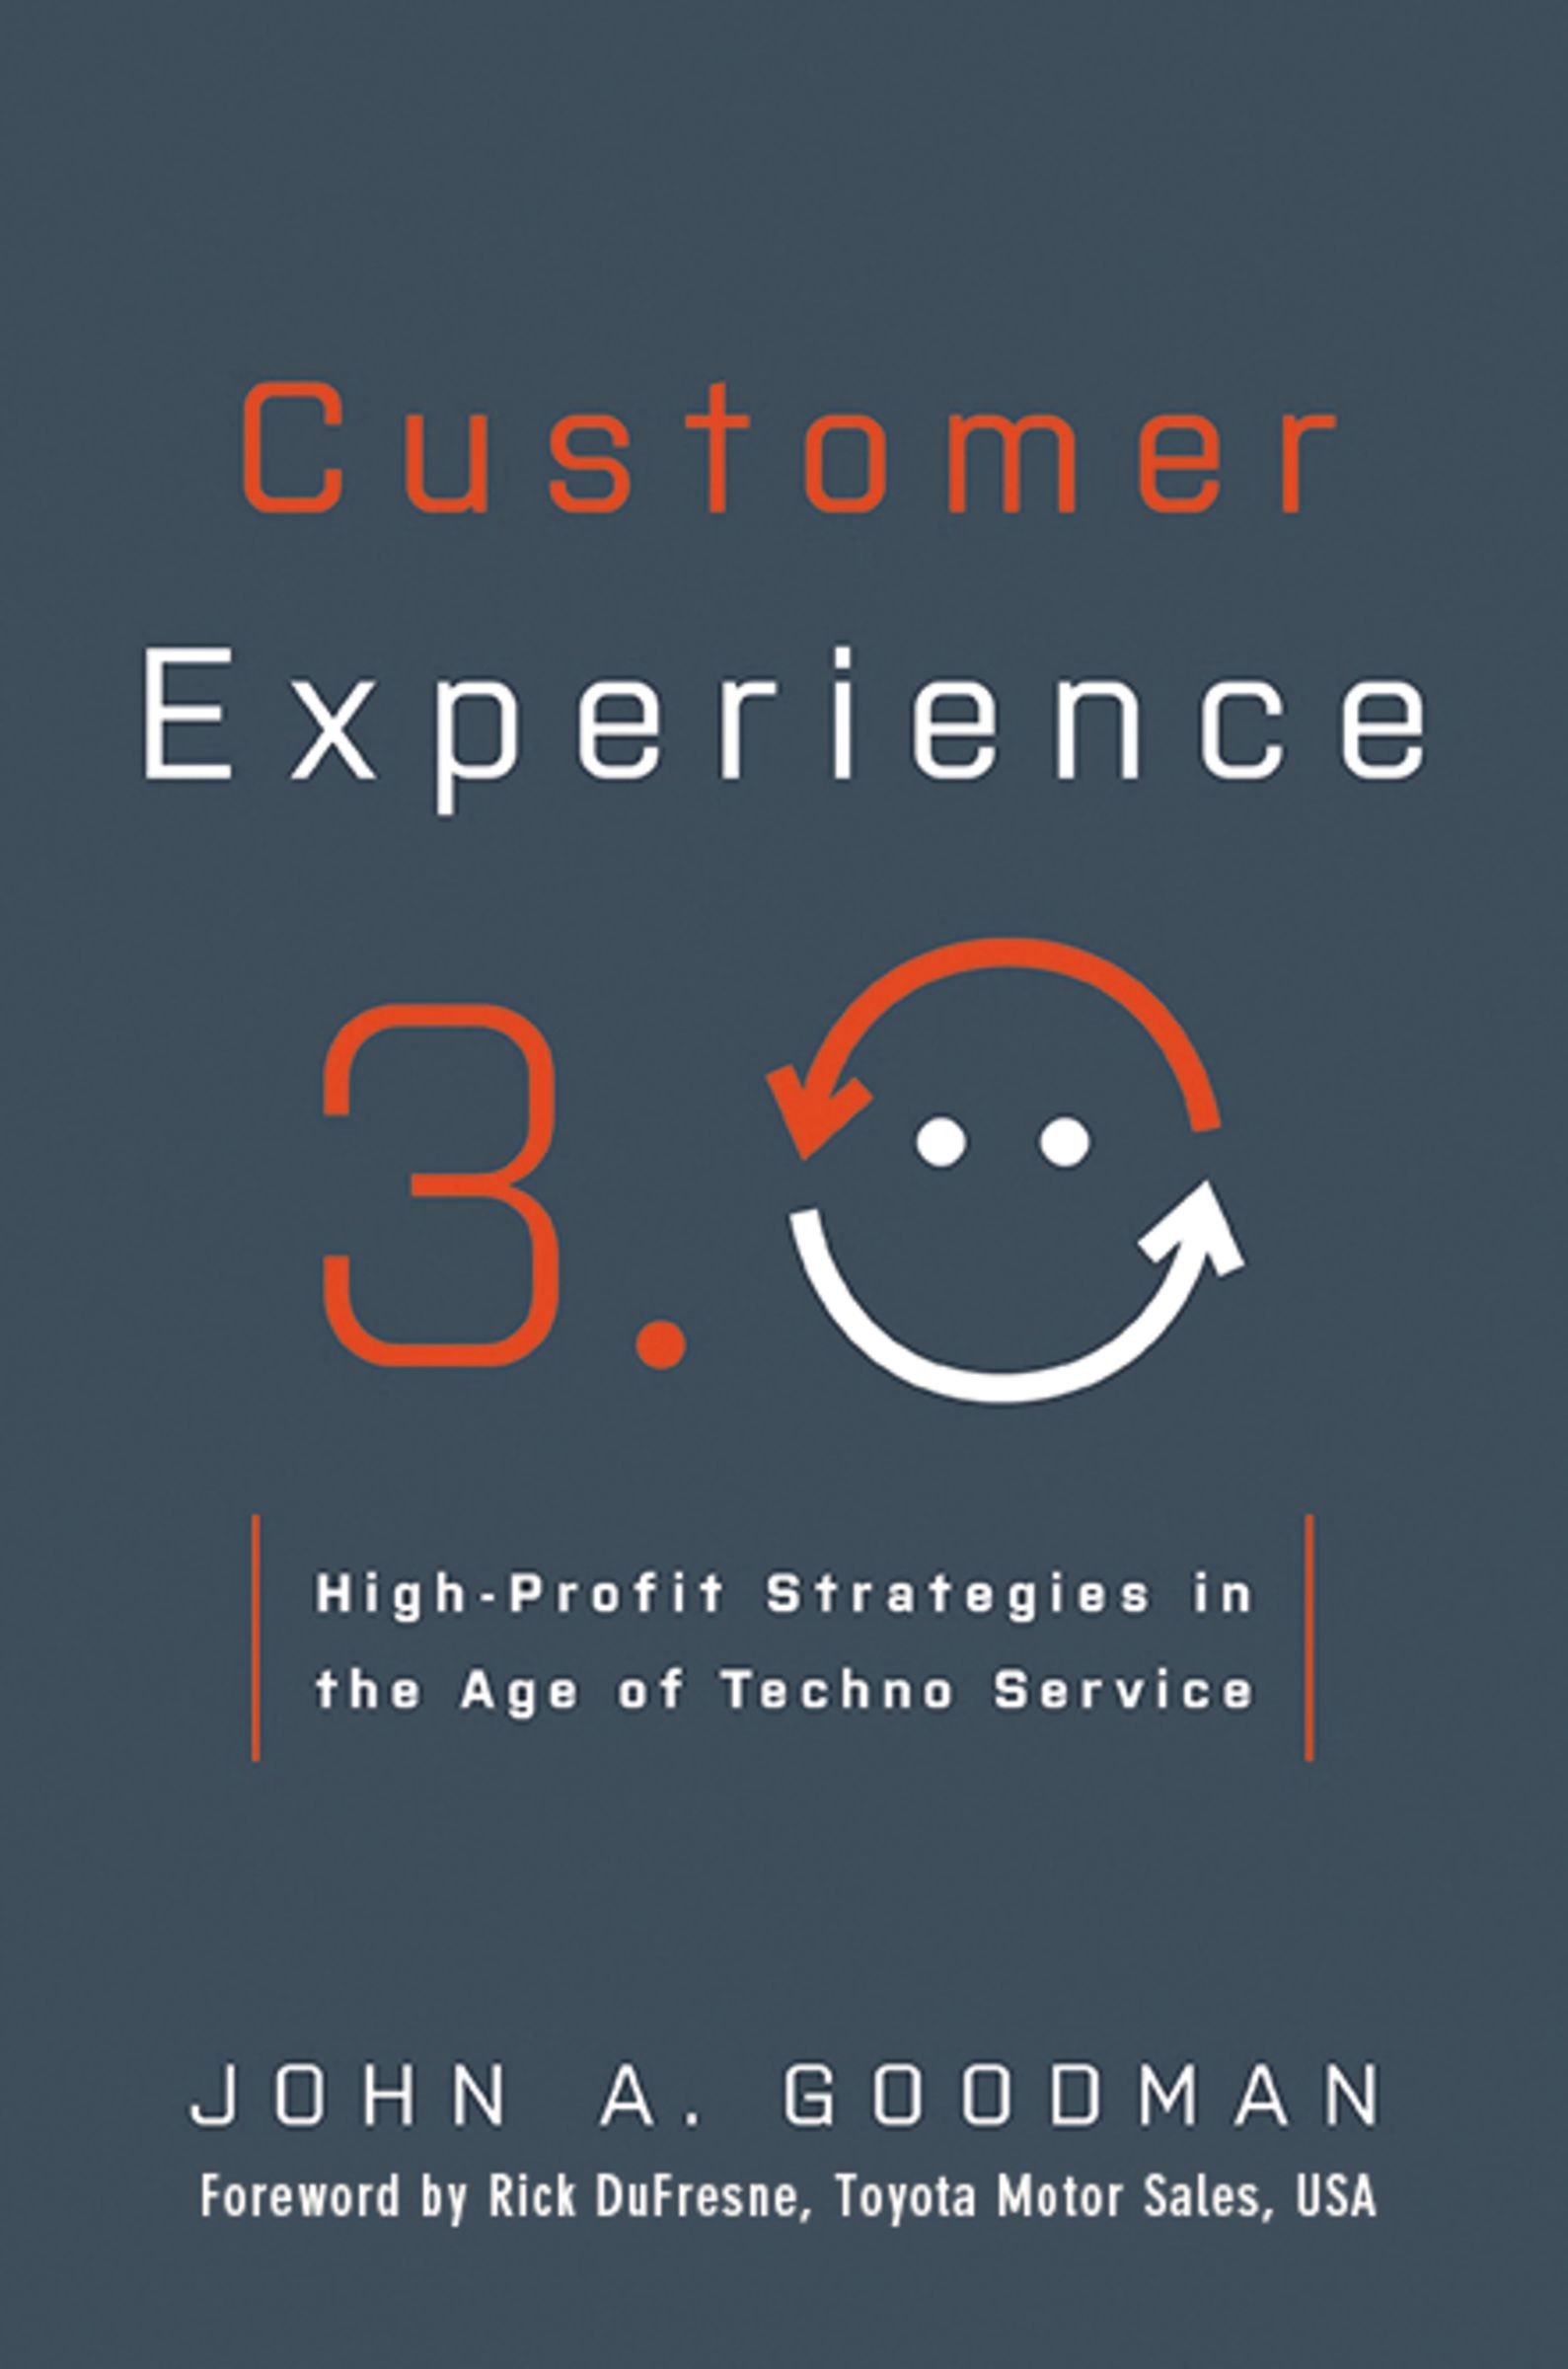 Customer Experience 3.0: High-Profit Strategies in the Age of Techno Service: Amazon.es: Goodman, John A.: Libros en idiomas extranjeros